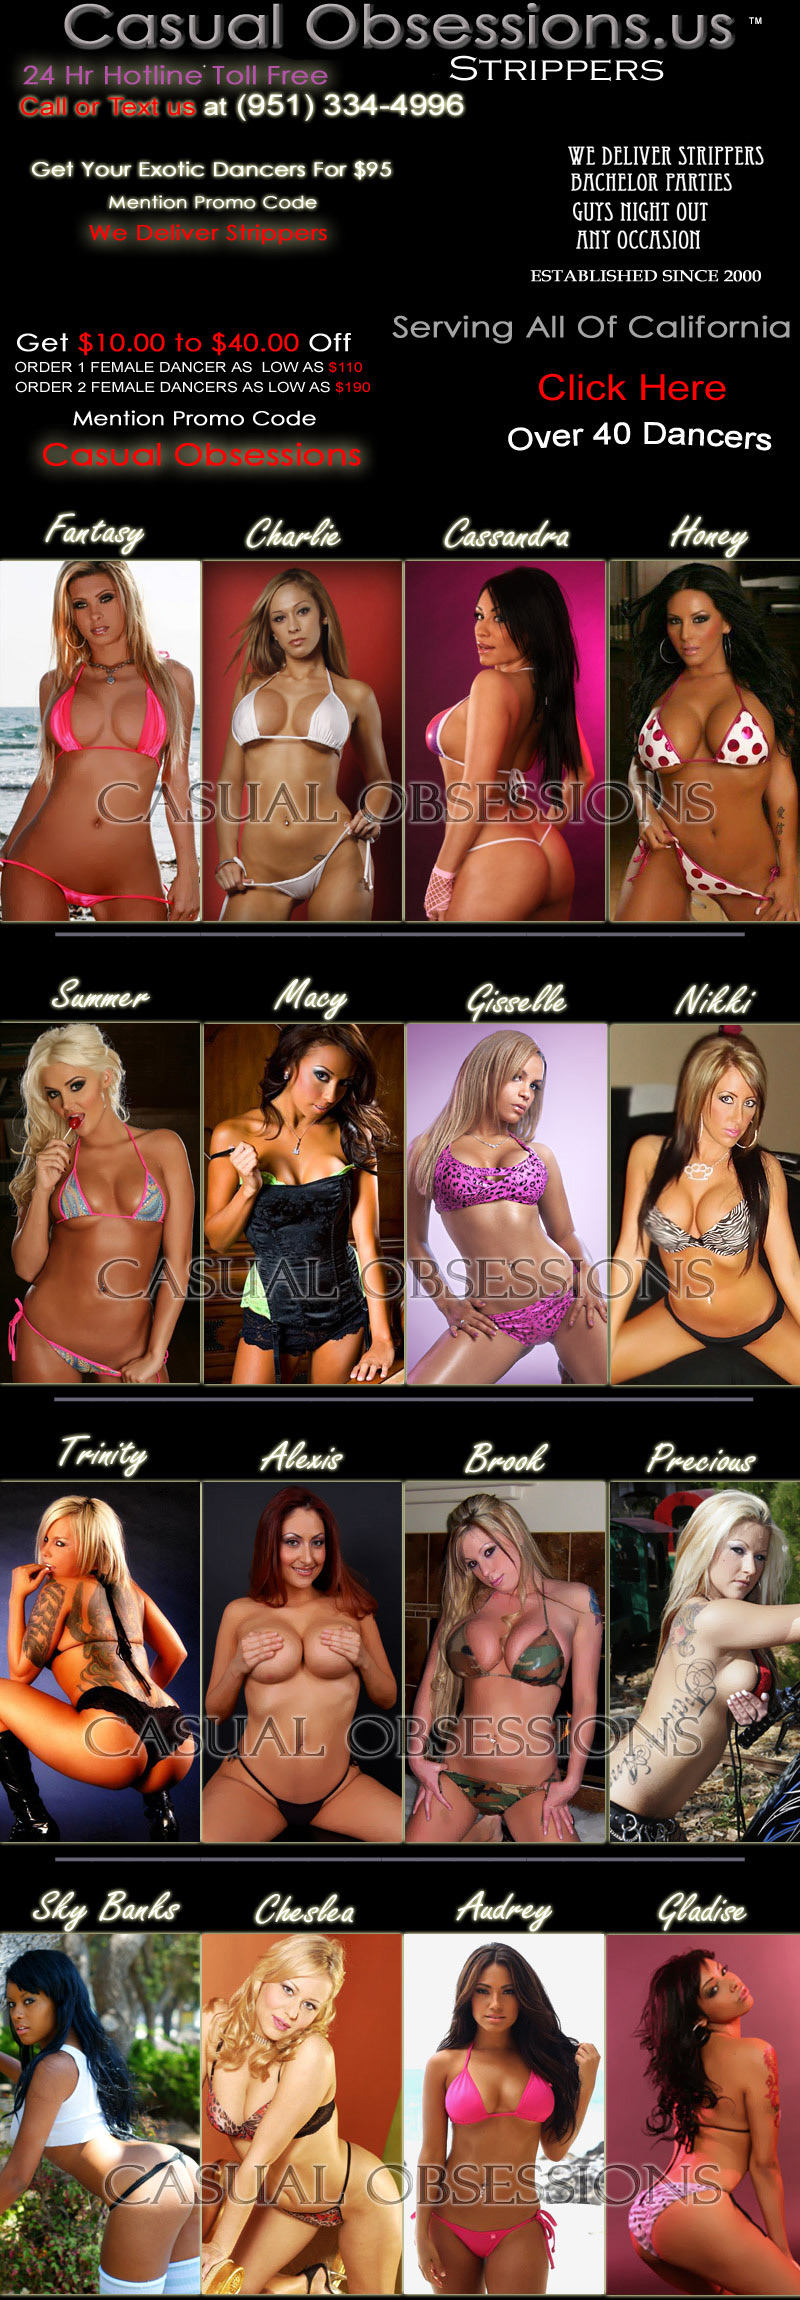 1 Stop Female Strippers For Southern California